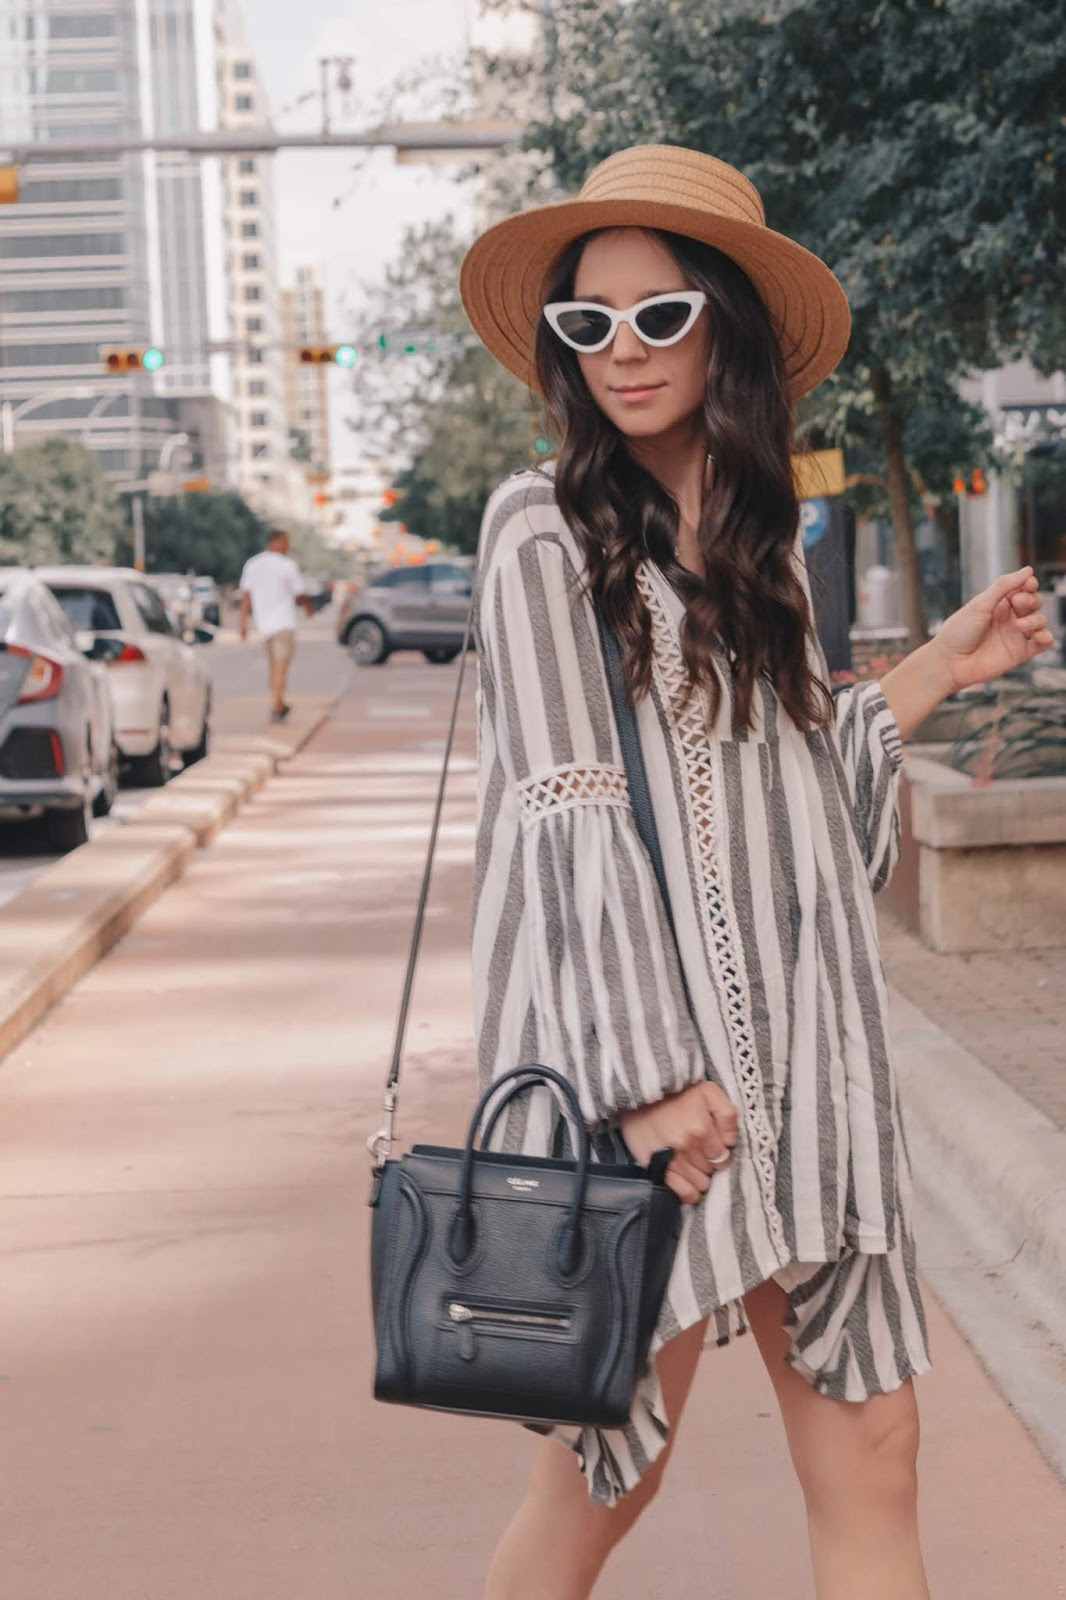 Casual Summer Outfit | Simply Ana: Fashion Influencer ...